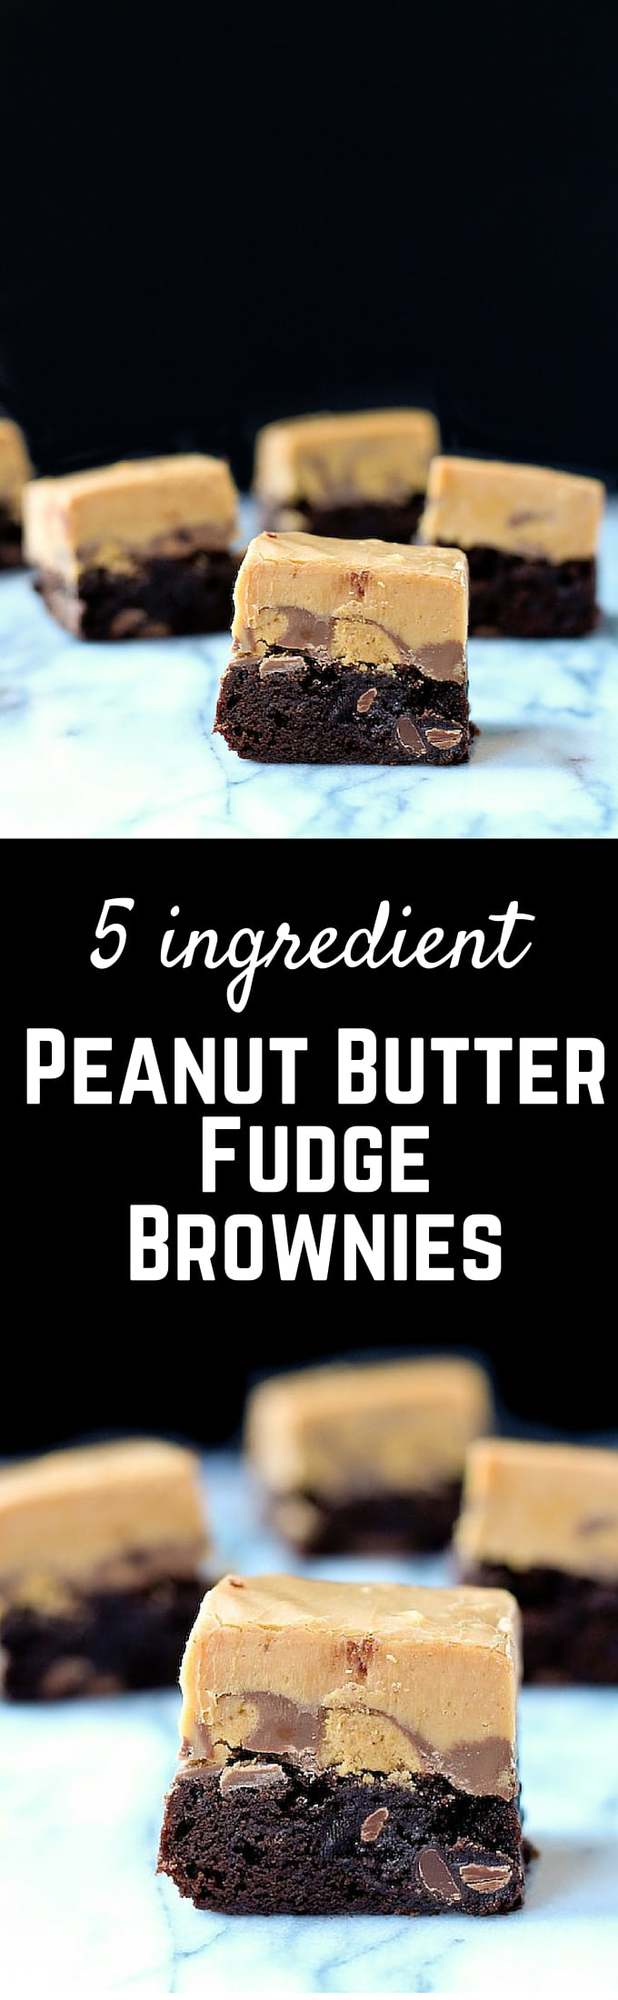 Peanut Butter Fudge Brownies - the ultimate decadent treat for people who love peanut butter and chocolate! Get the easy recipe on RachelCooks.com!